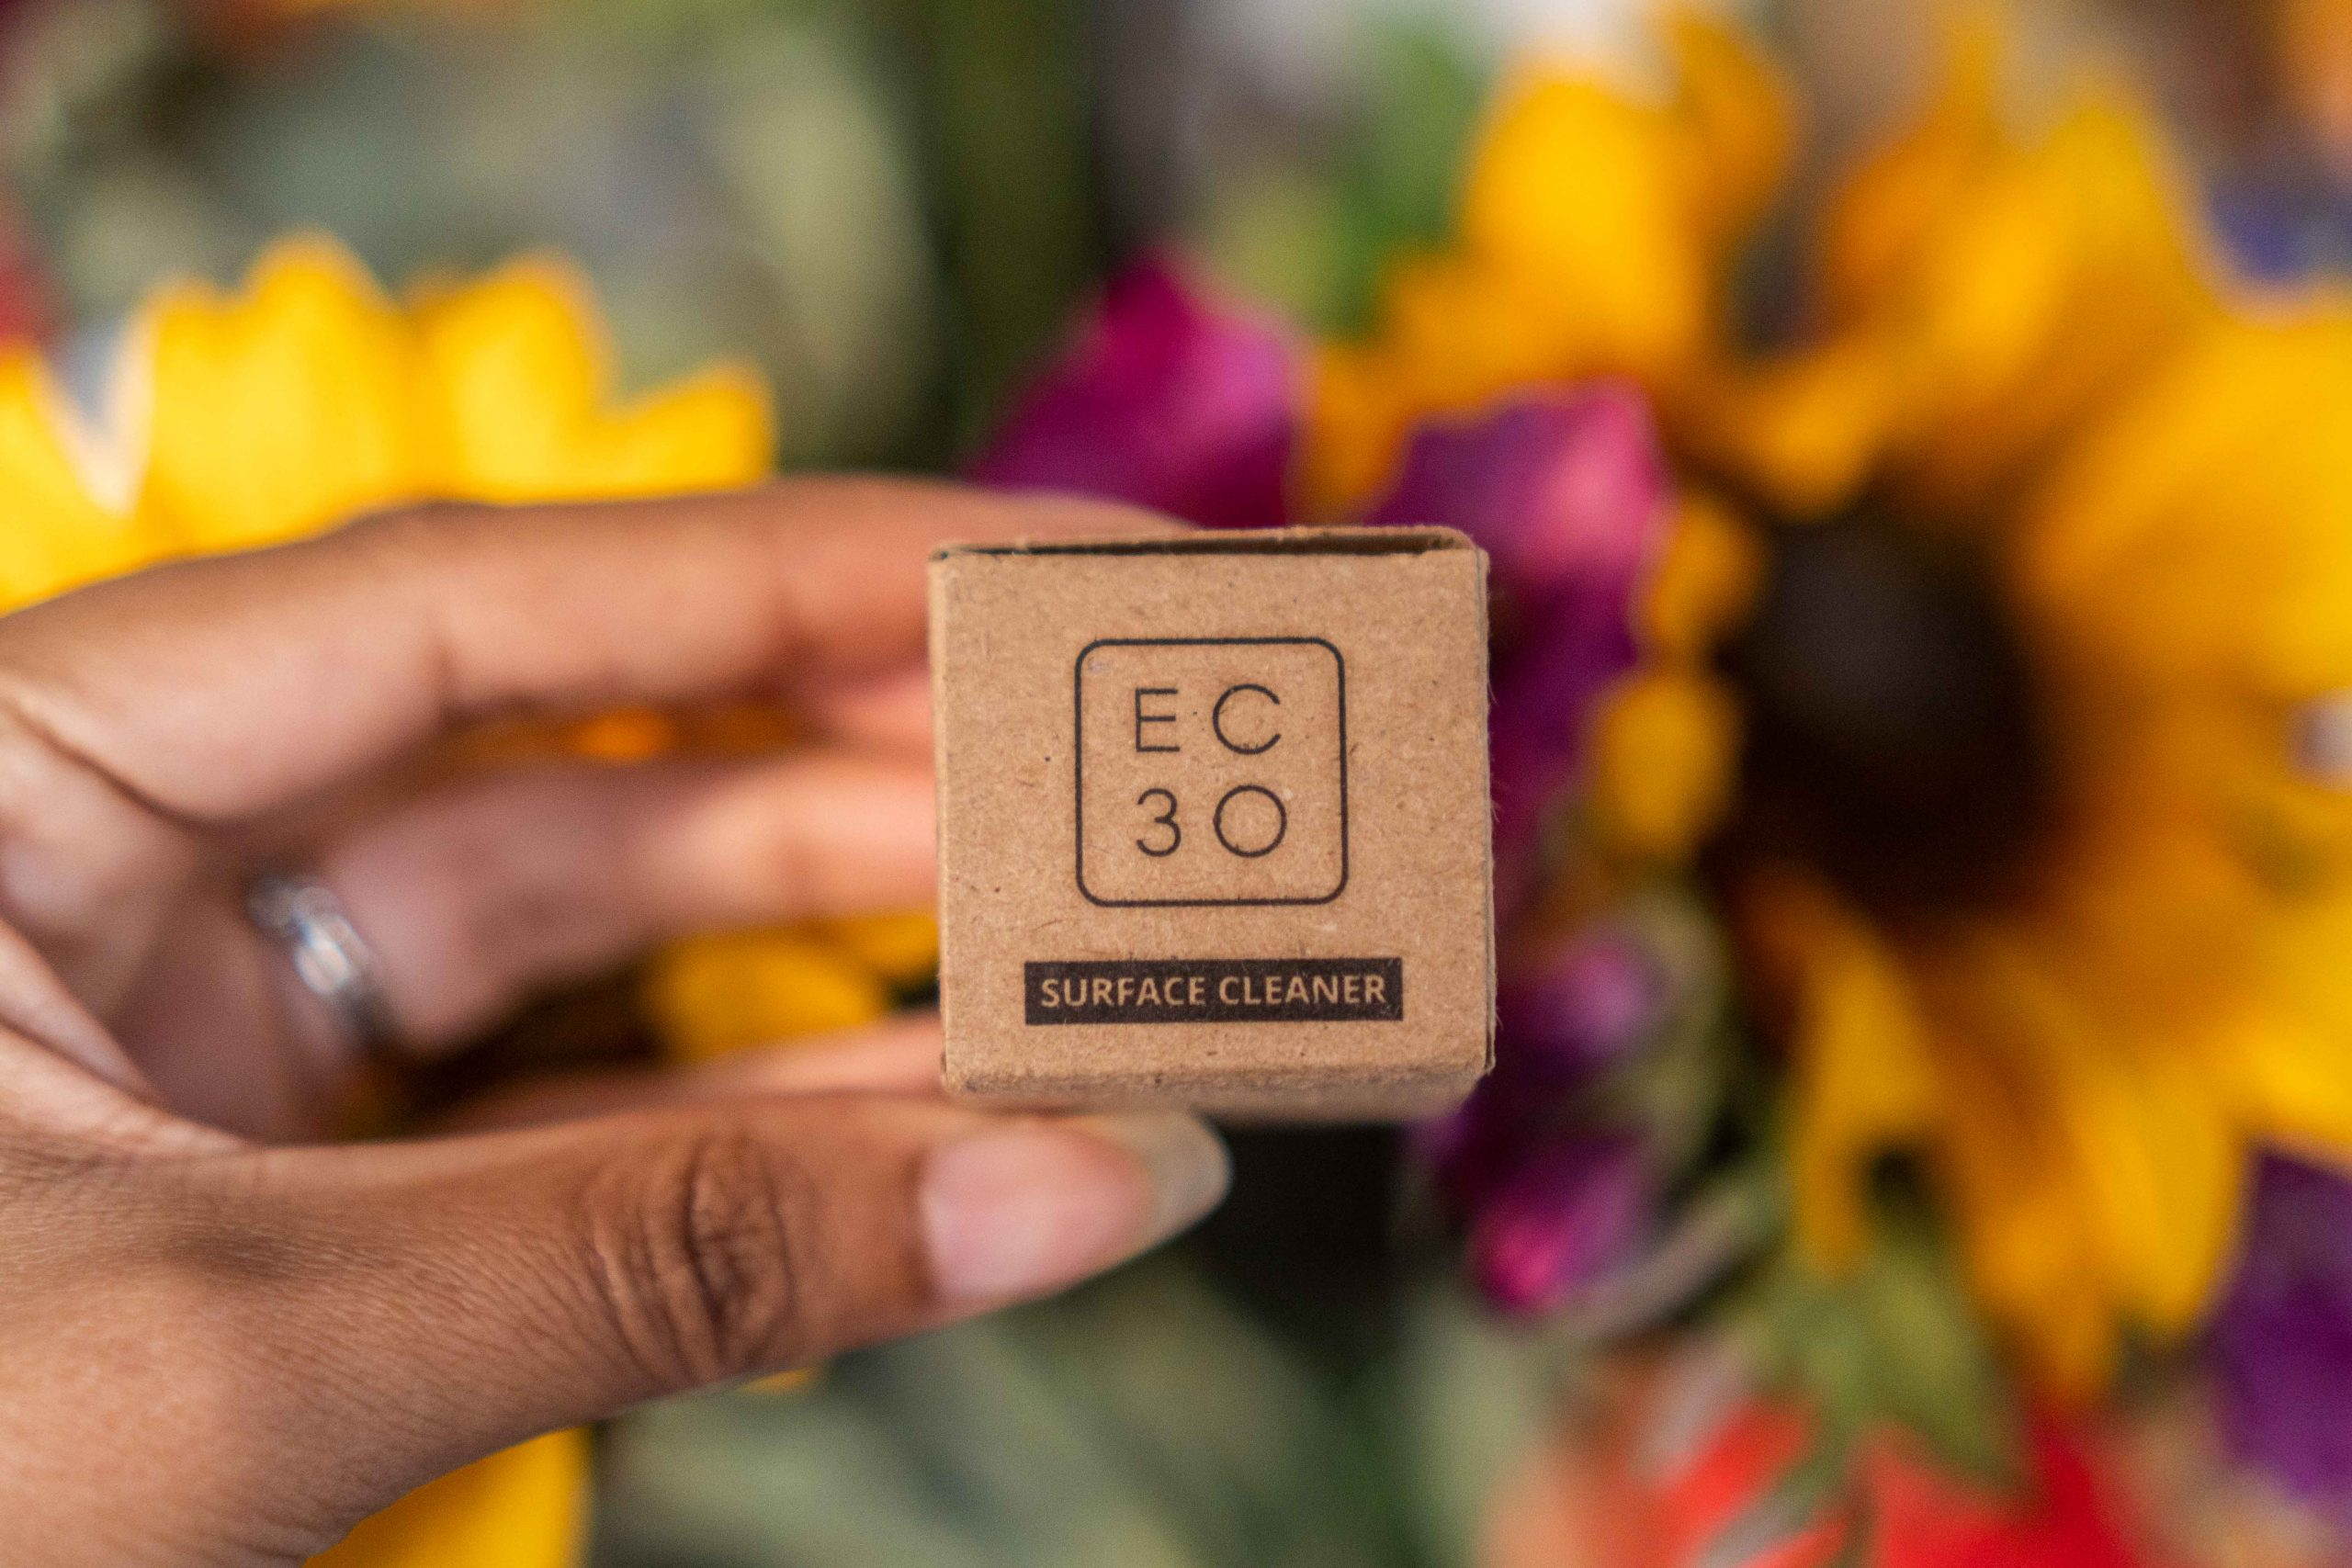 REVIEW: EC30 Eco-Friendly Home Cleaning and Body Care Products